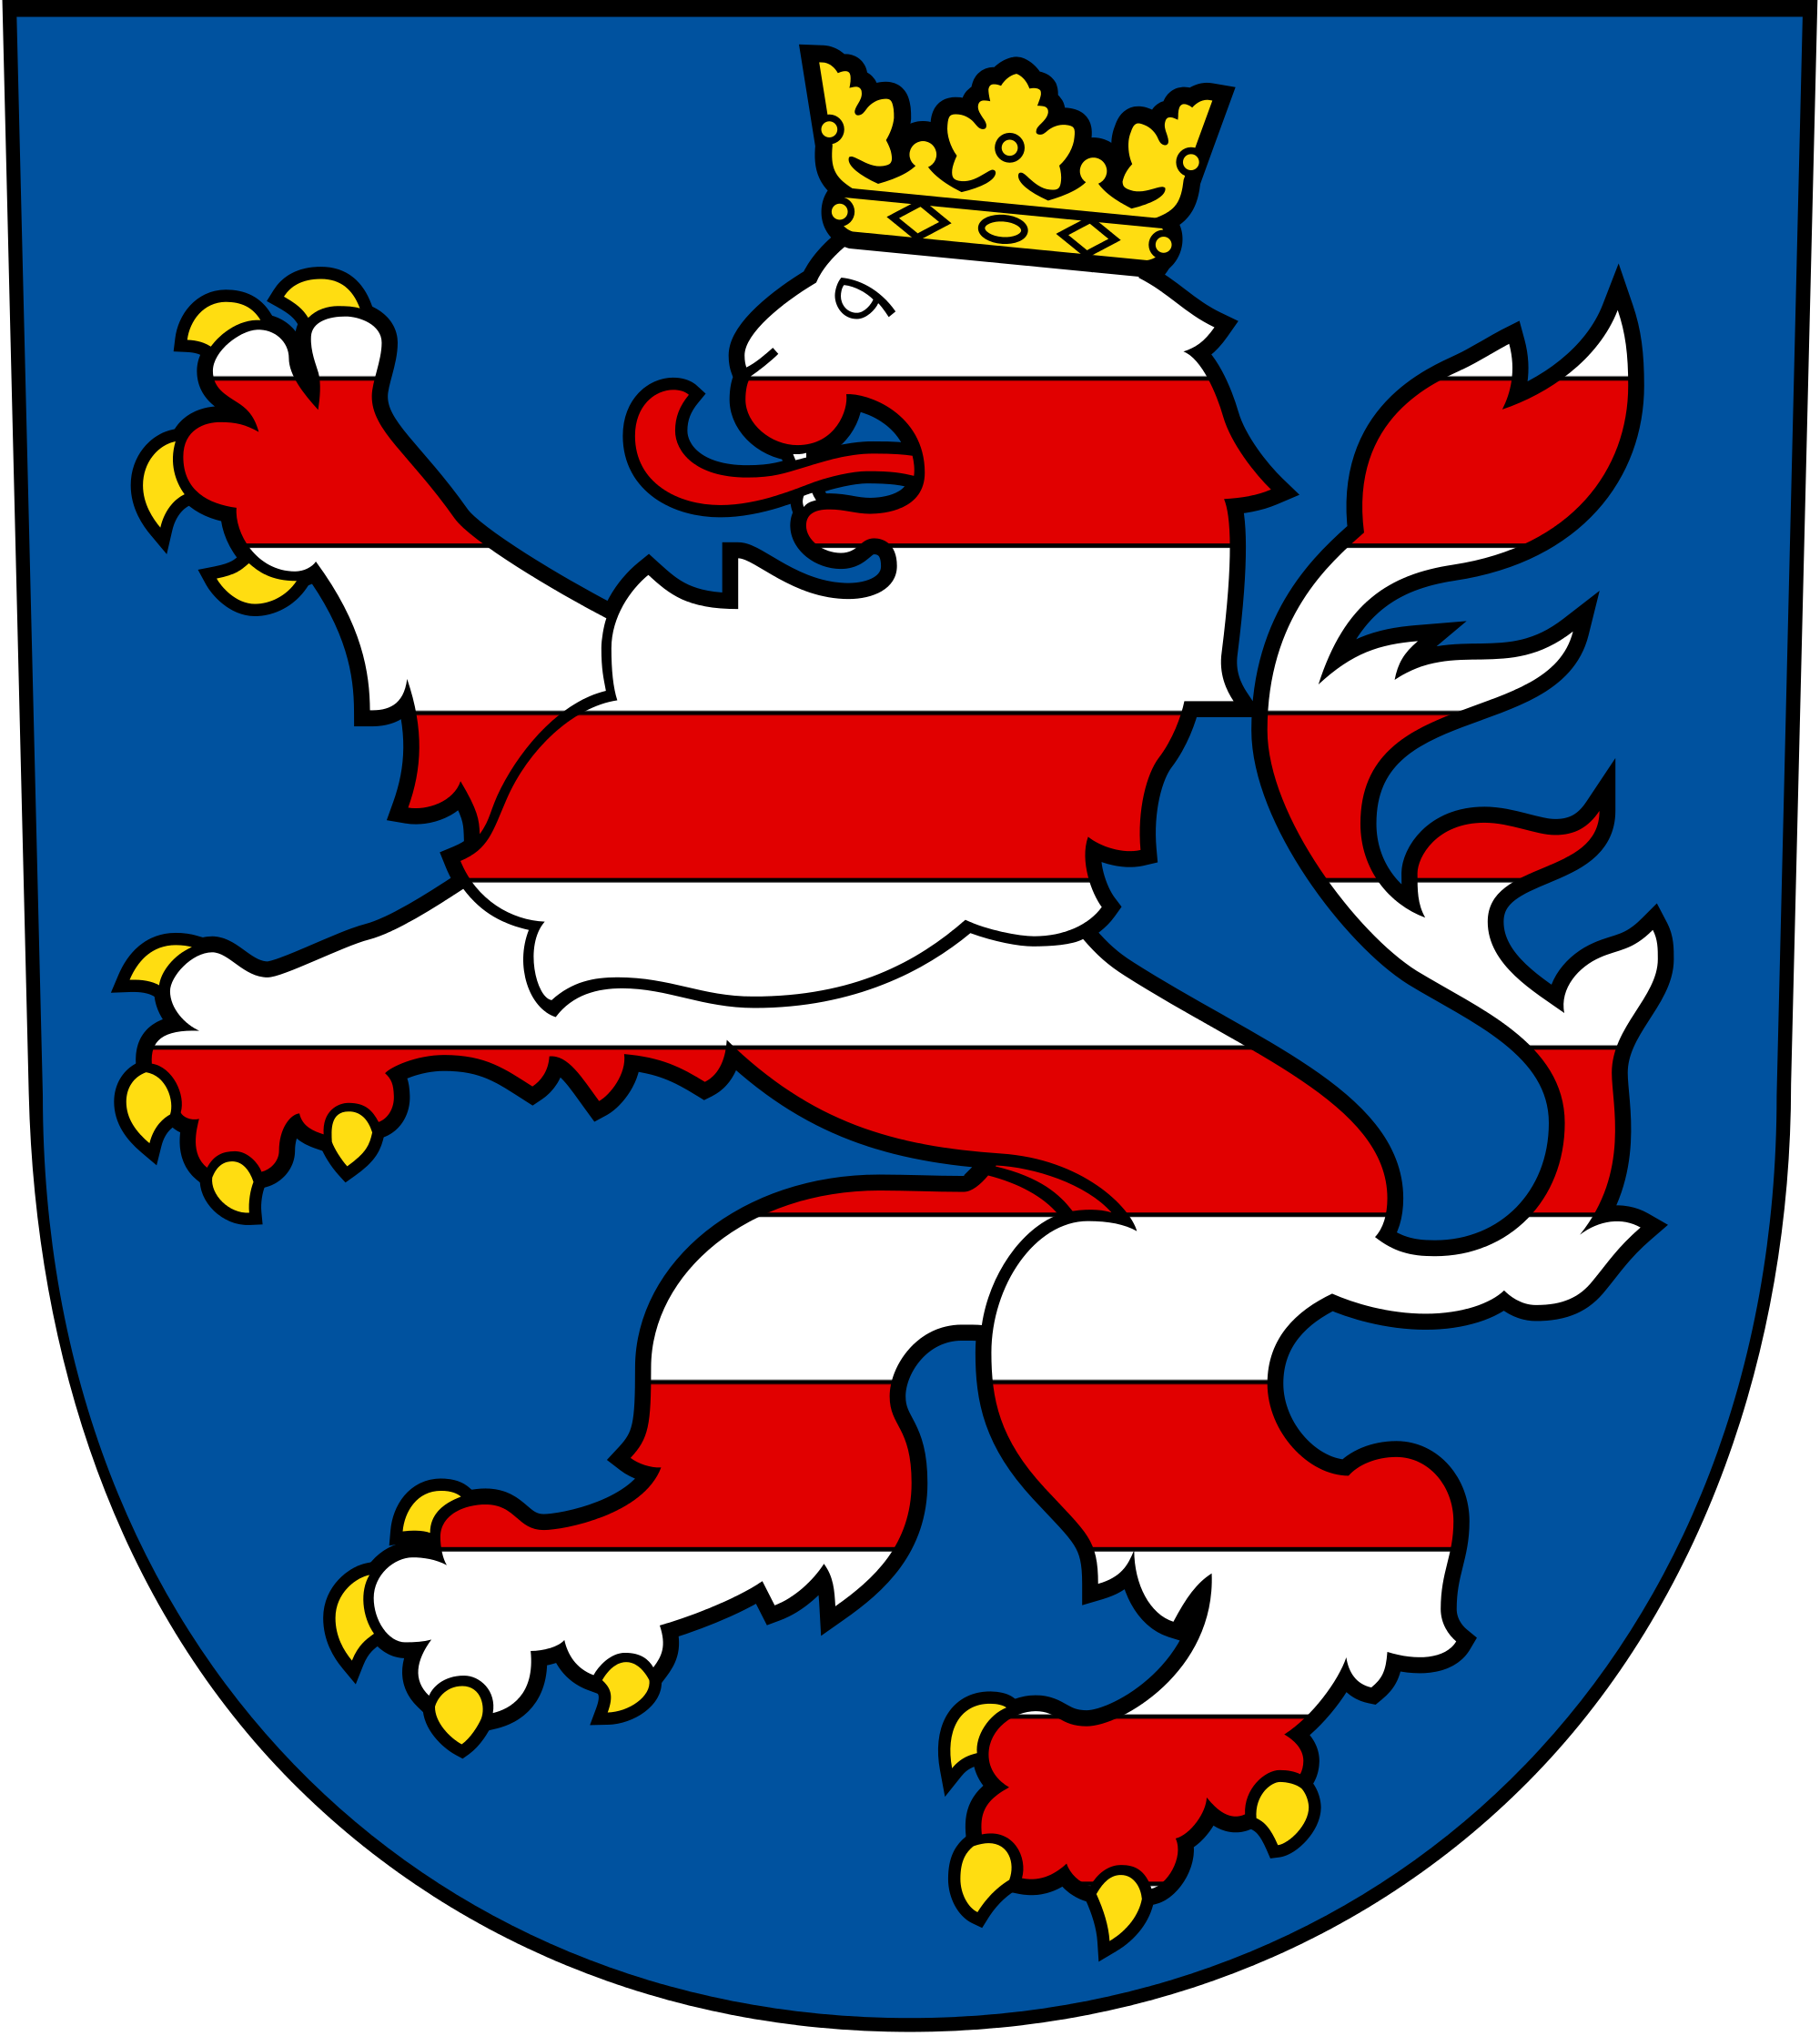 File:Coat of arms of Landgraviate Hesse.